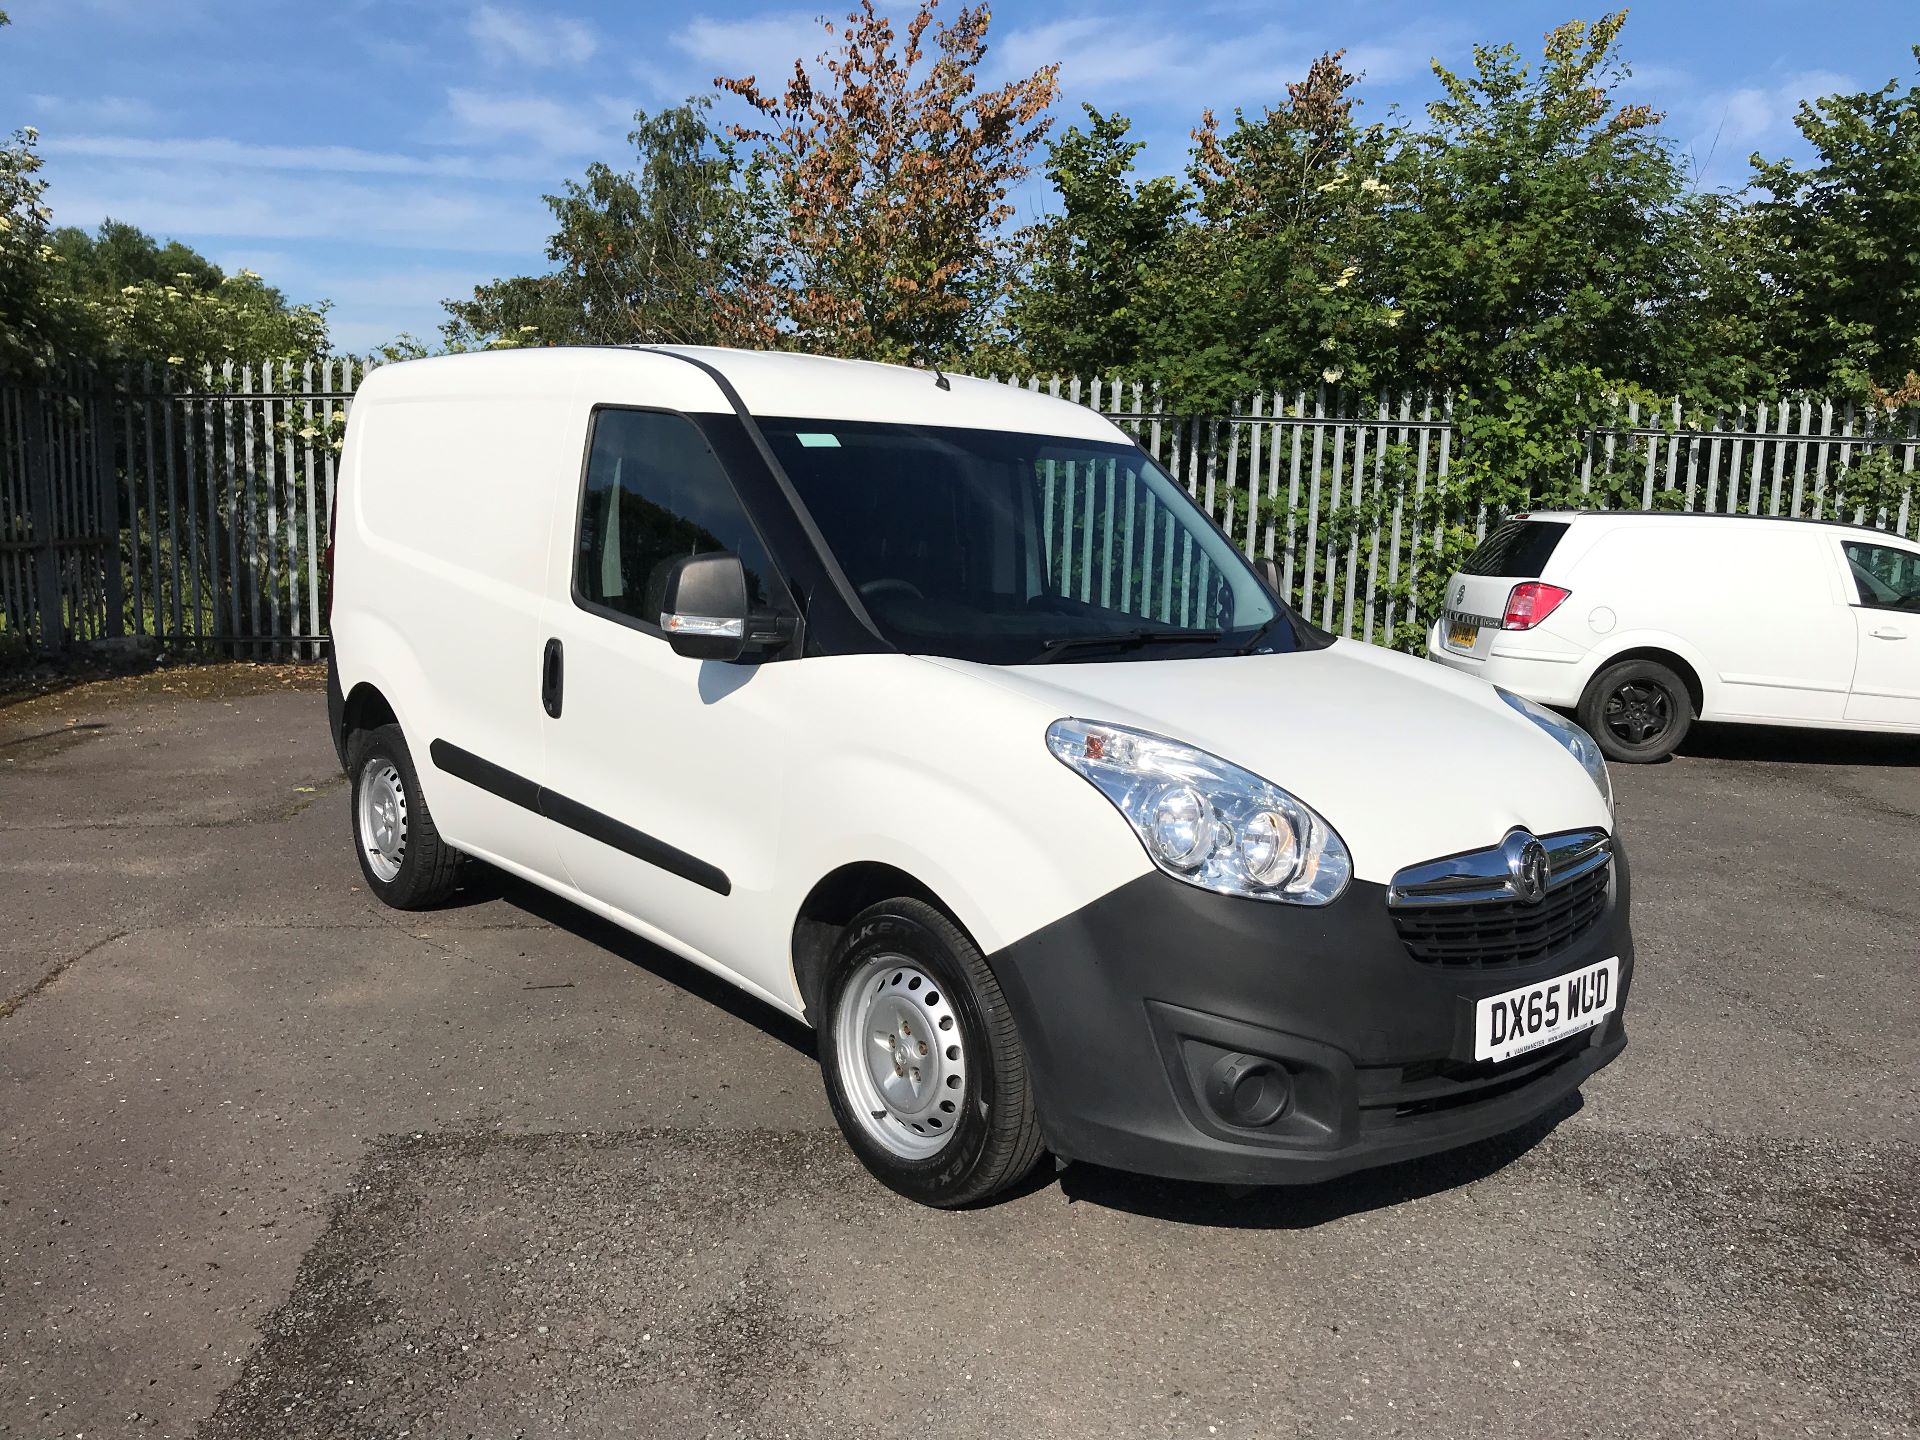 2015 Vauxhall Combo 2000 L1 H1 1.3CDTI 75PS EURO 5 (DX65WUD)